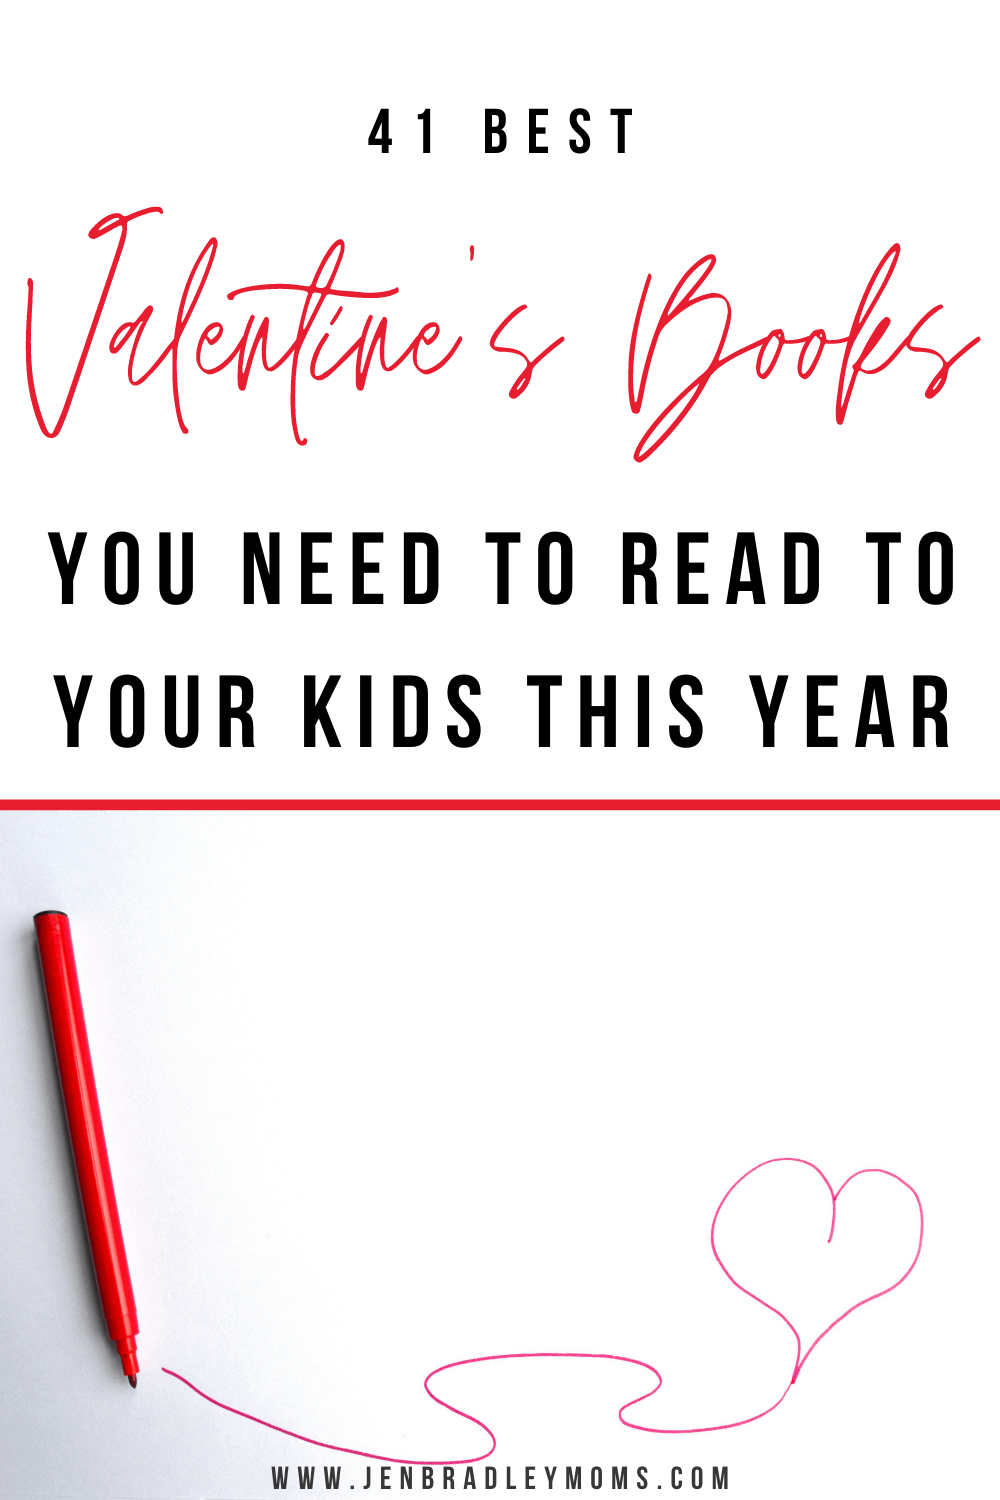 The 41 Best Valentine\'s Books for Kids You Need to Read This Year